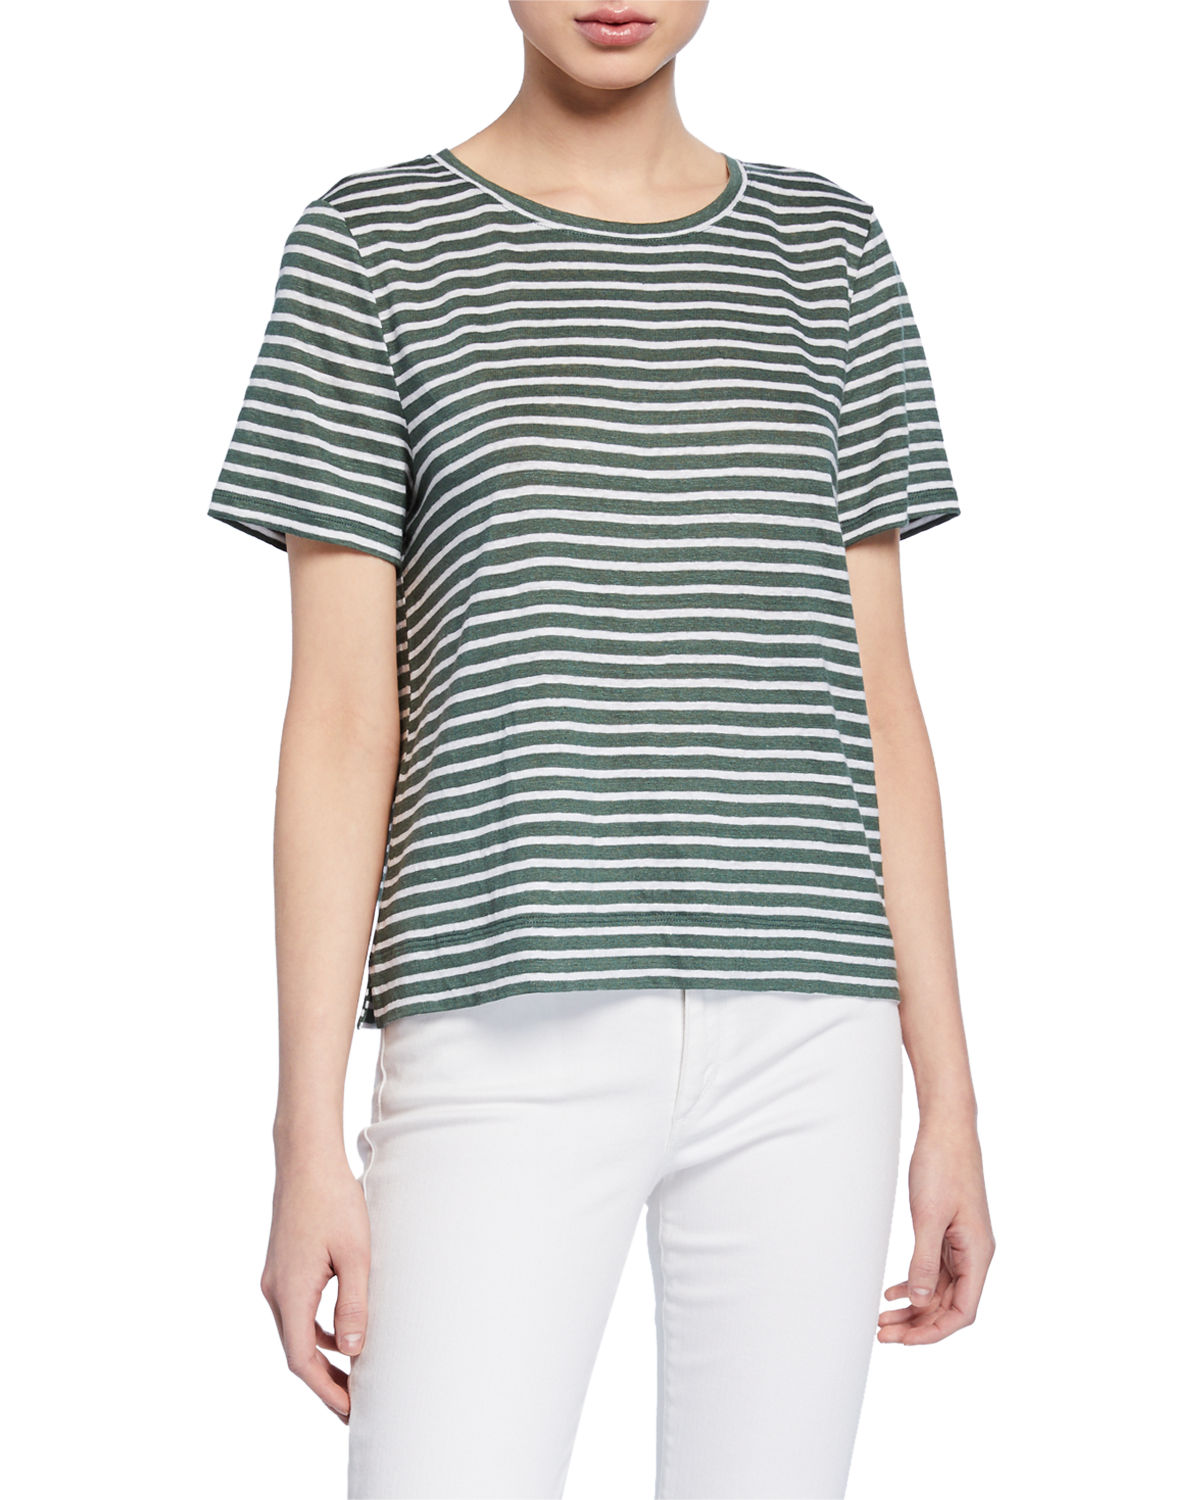 Eileen Fisher Tops PETITE STRIPED ORGANIC LINEN JERSEY CAP-SLEEVE TEE